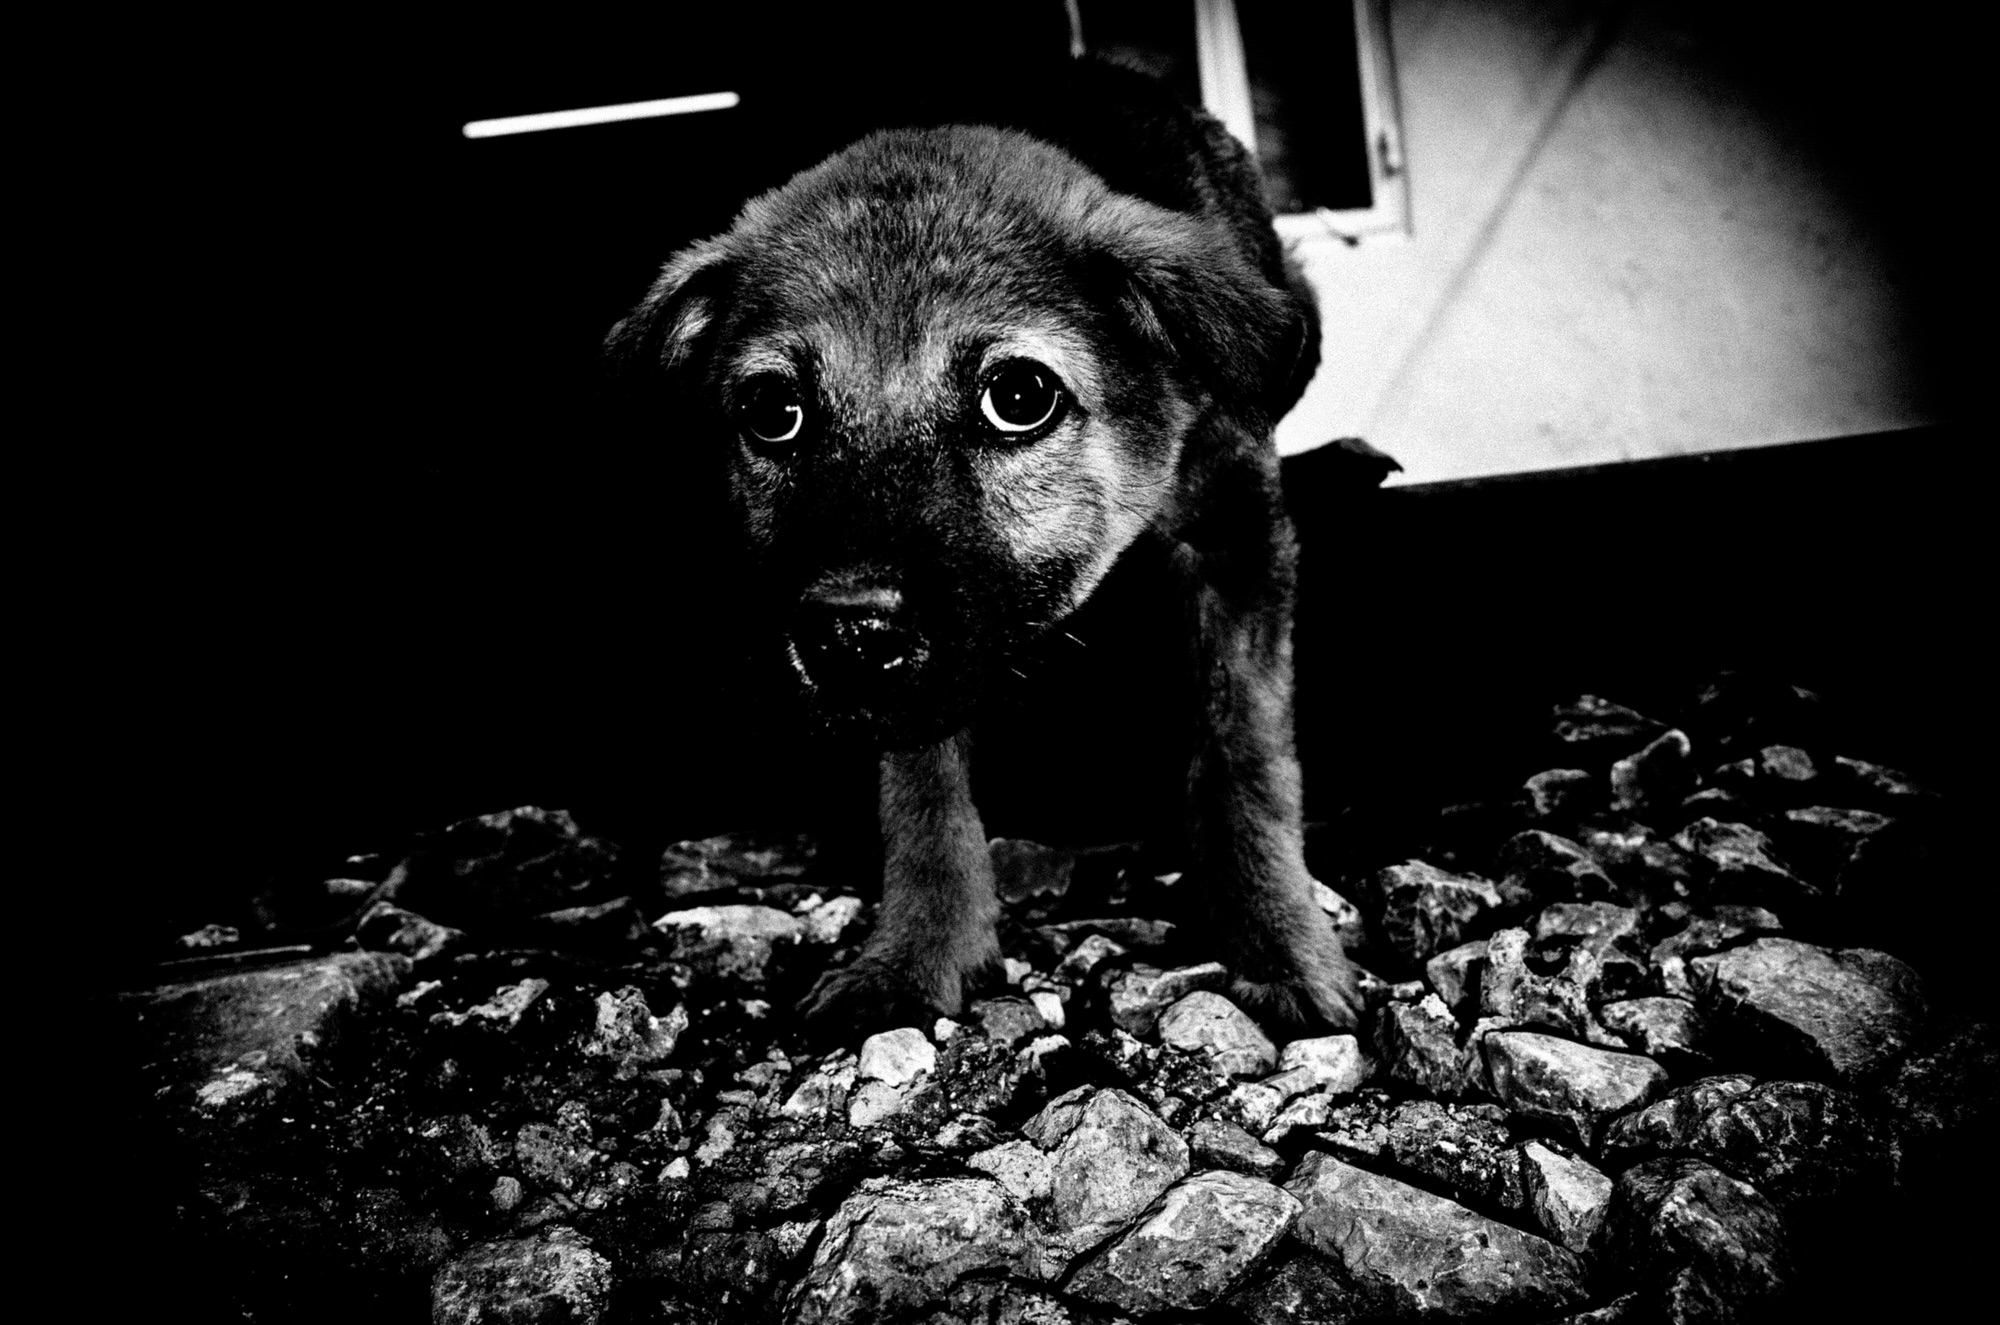 eric kim photography black and white dog puppy-0011682